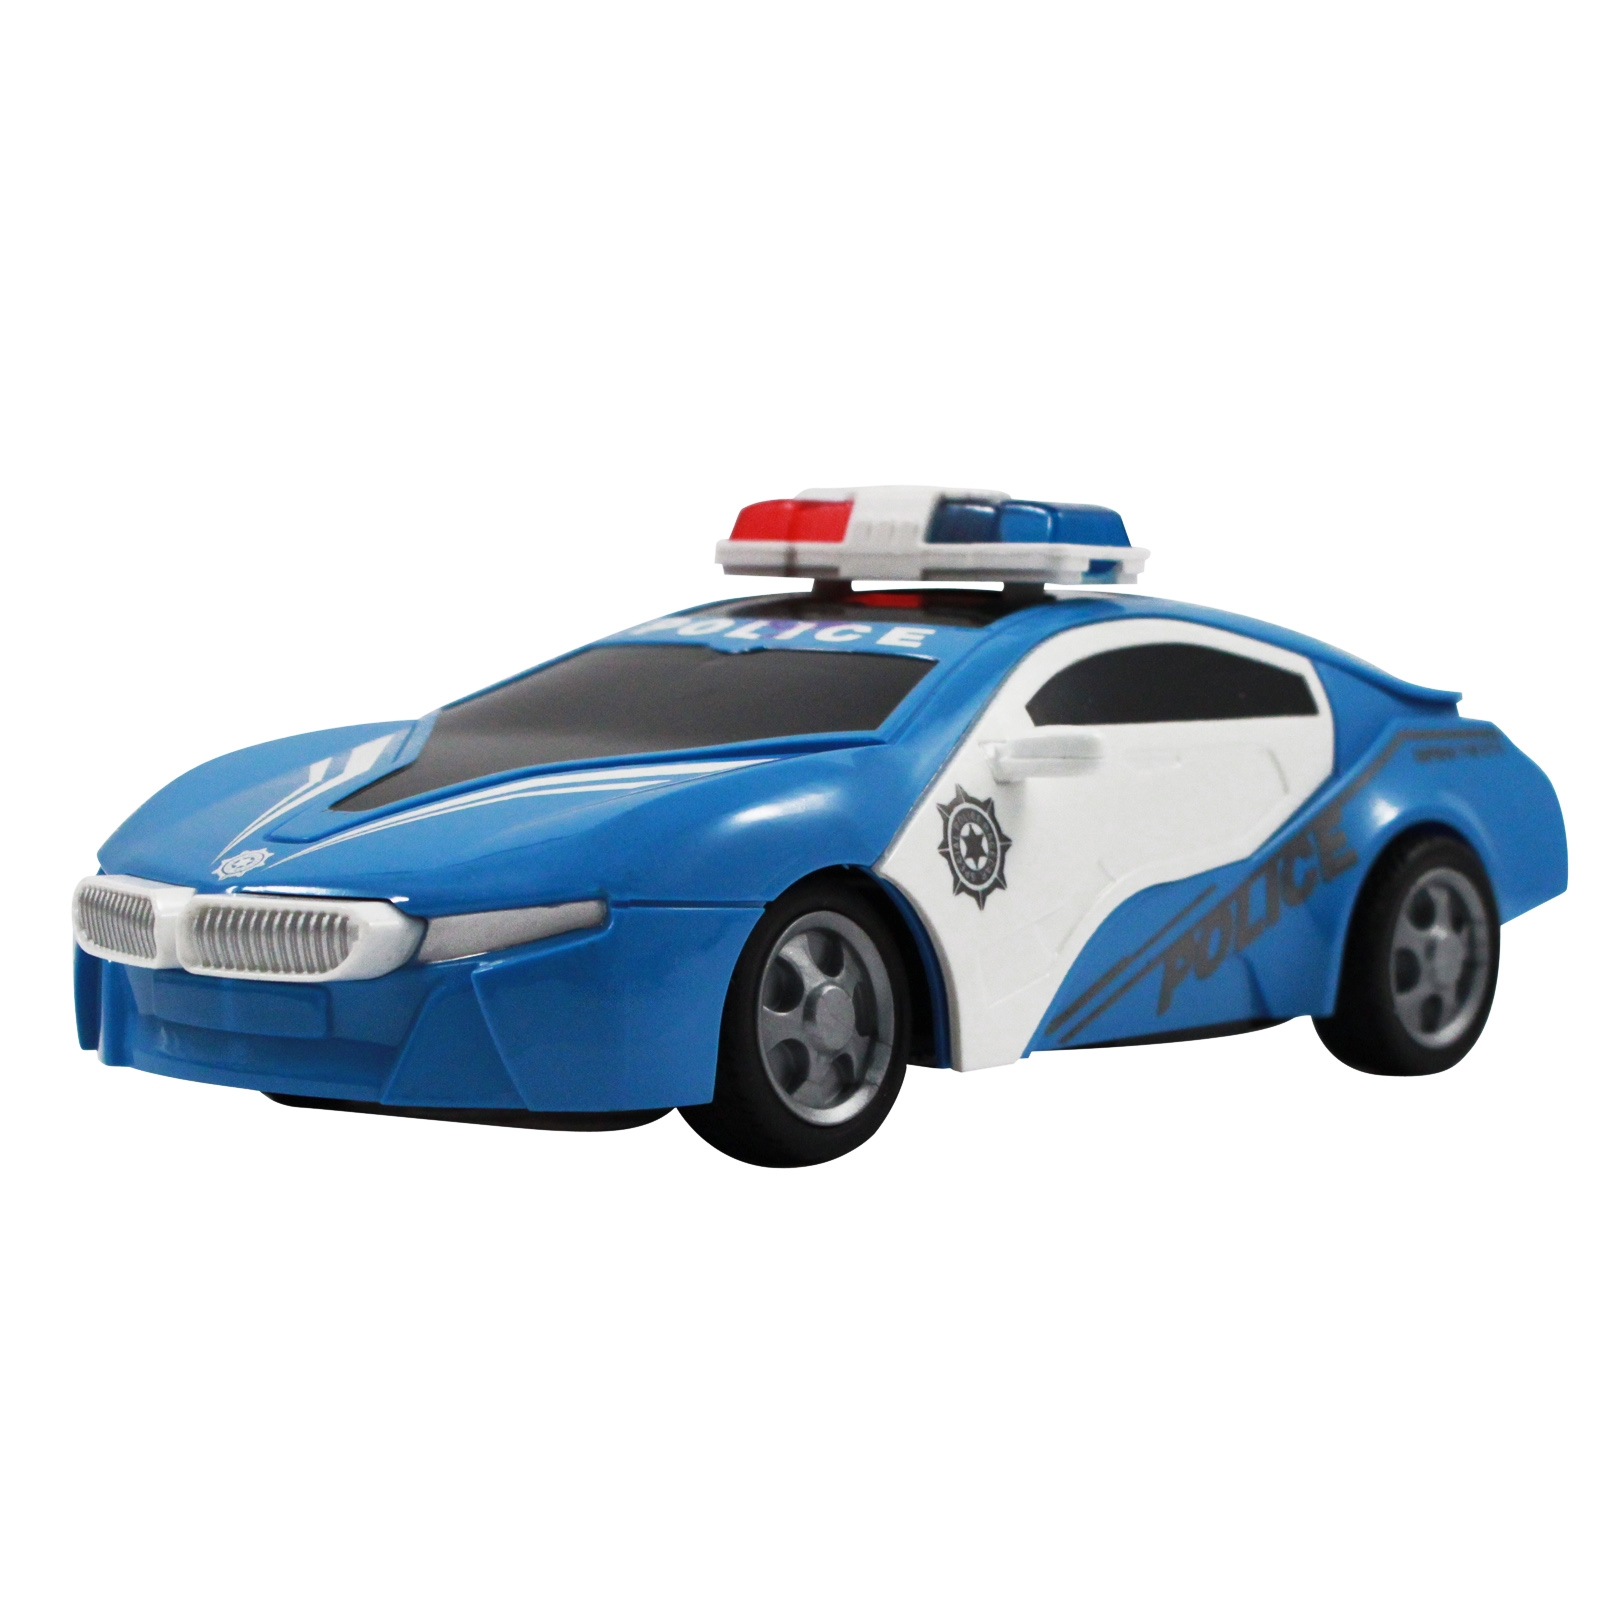 Blue Remote Control Police Fast Action Car Cop Vechicle Boys Toy RC